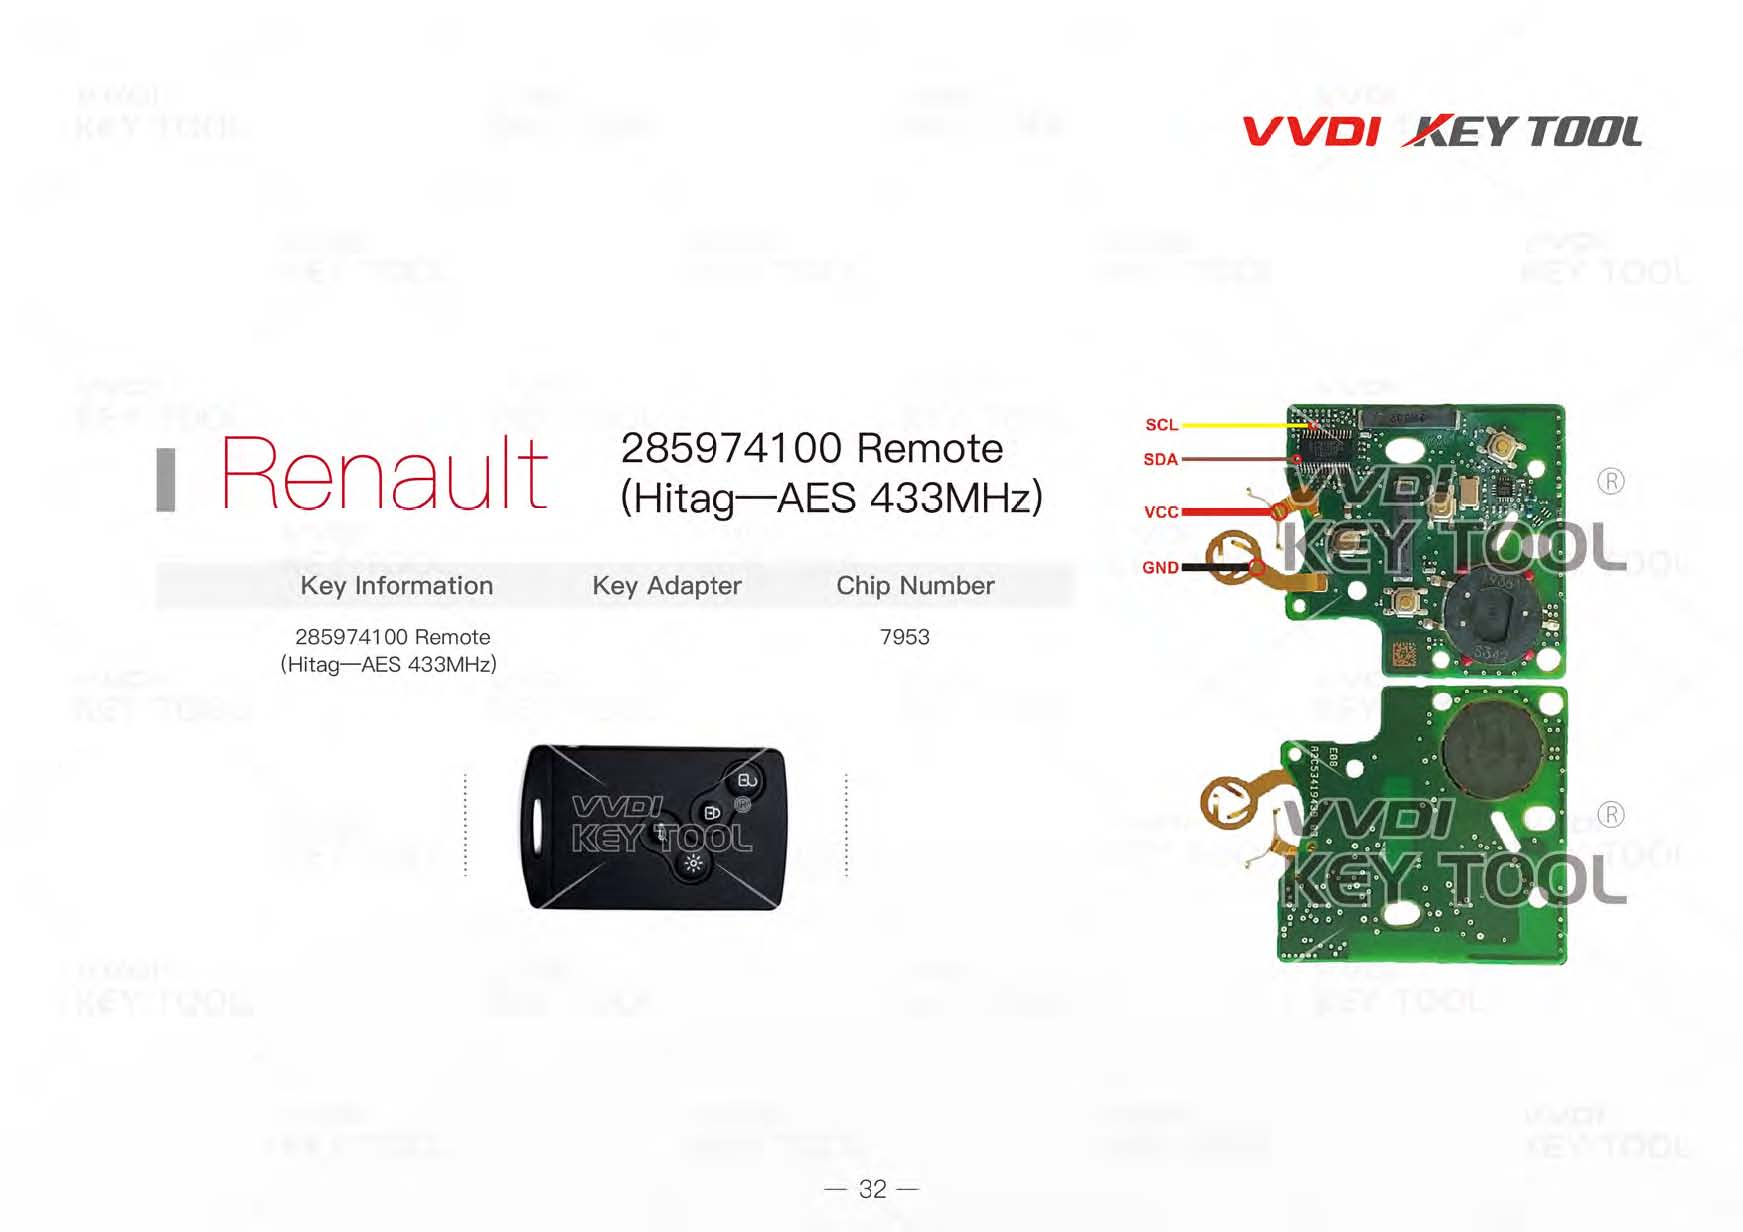 vvdi-key-tool-renew-diagram-32